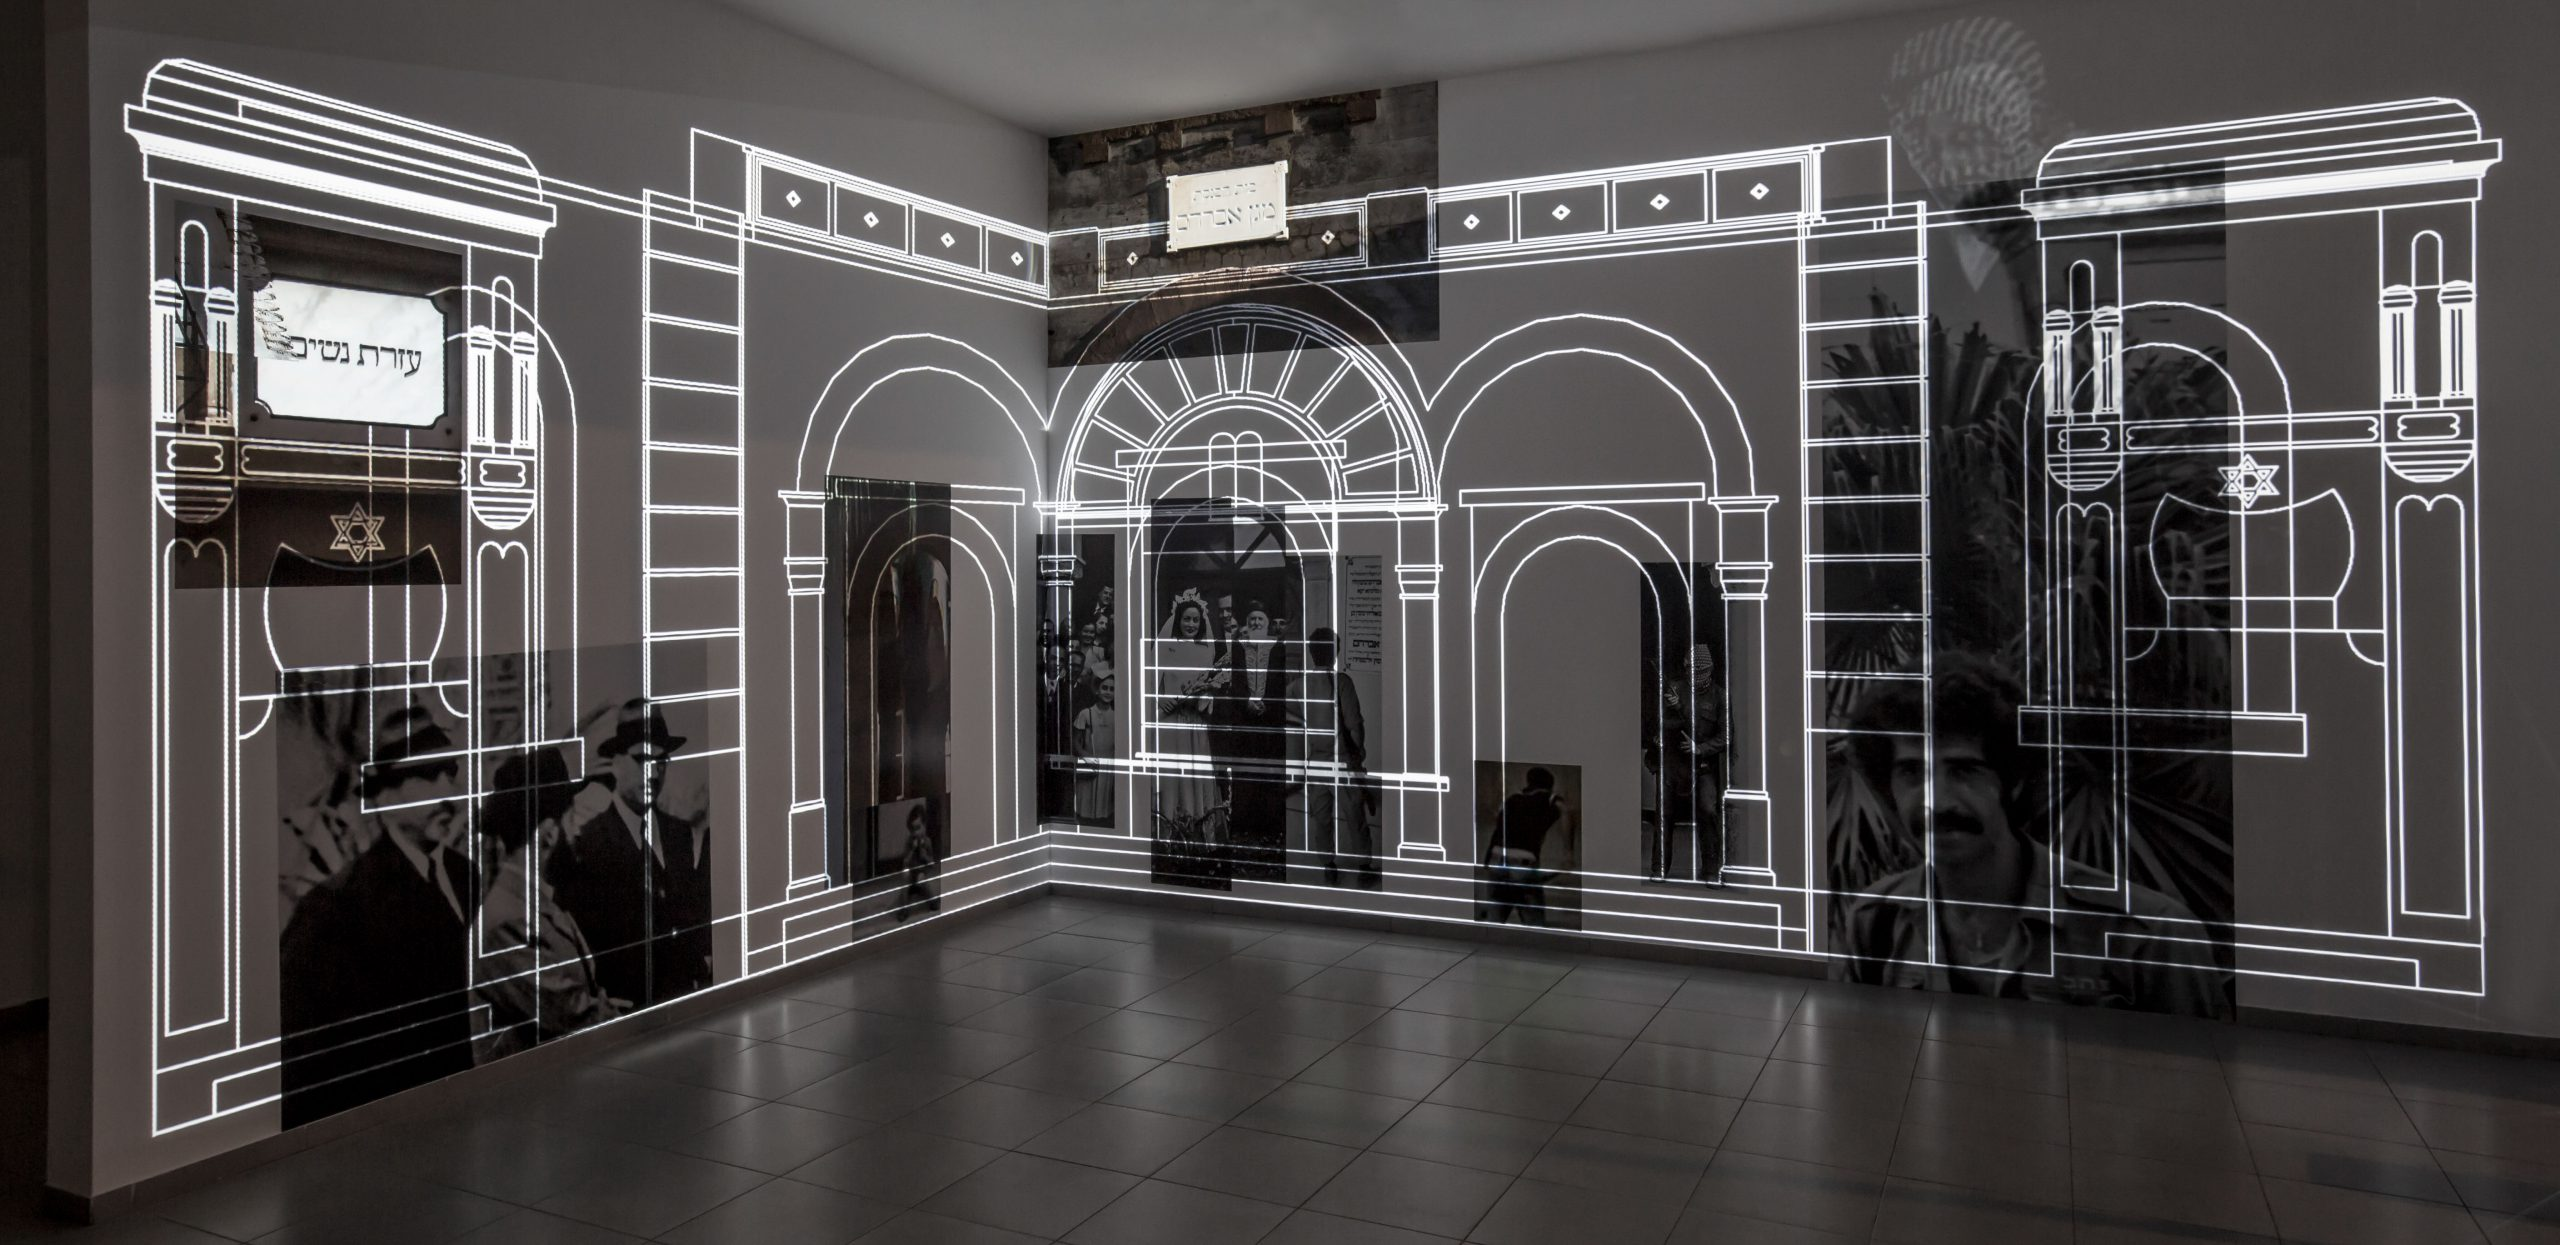 'Facade', Projection and print installation, Hamidrasha Gallery, 2019 (installation view) (installation view)